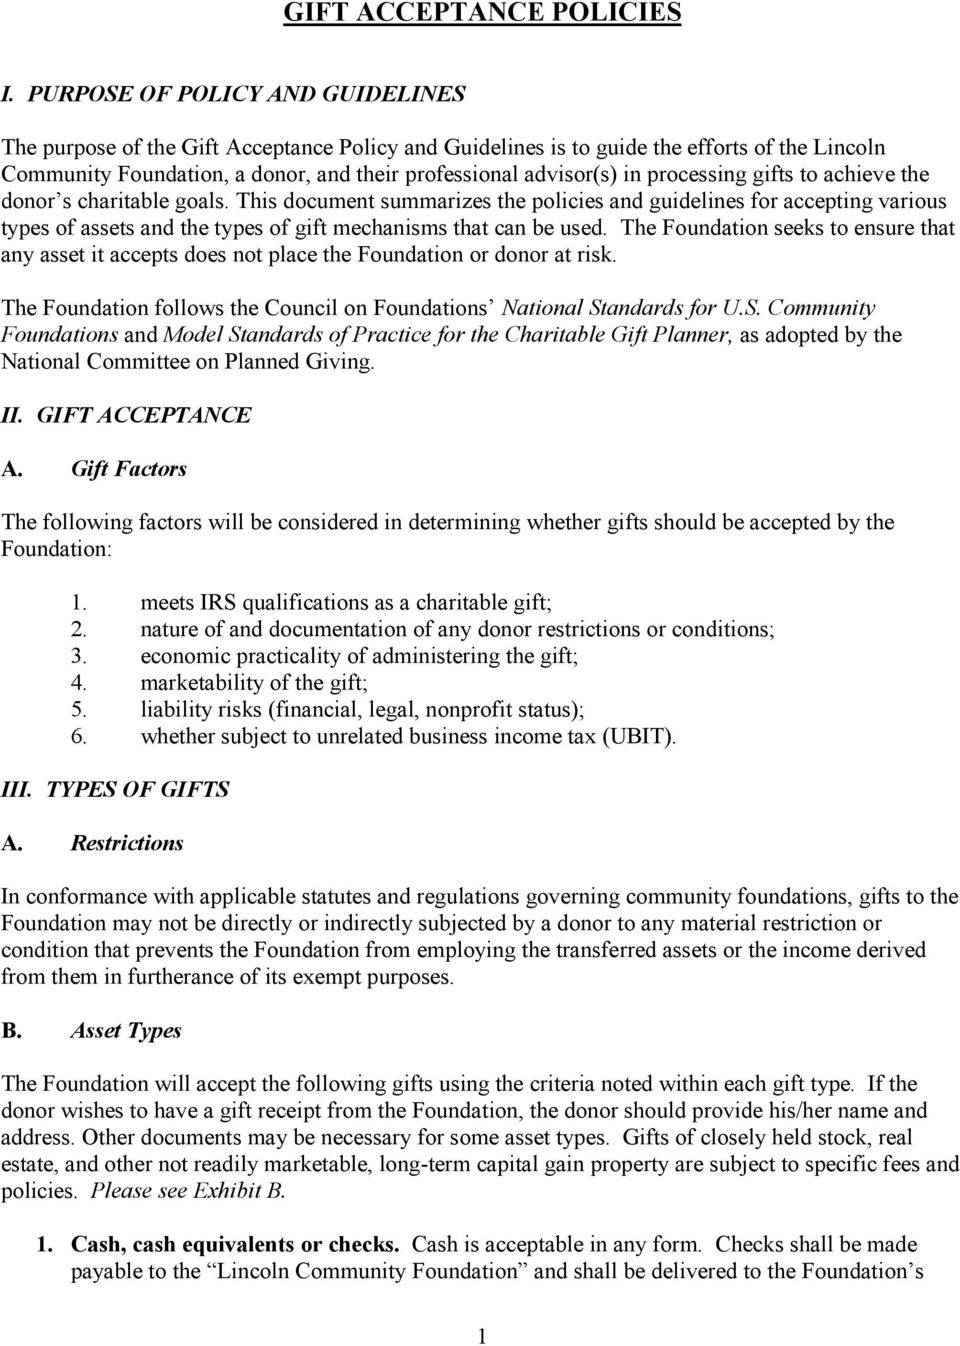 processing gifts to achieve the donor s charitable goals. This document summarizes the policies and guidelines for accepting various types of assets and the types of gift mechanisms that can be used.